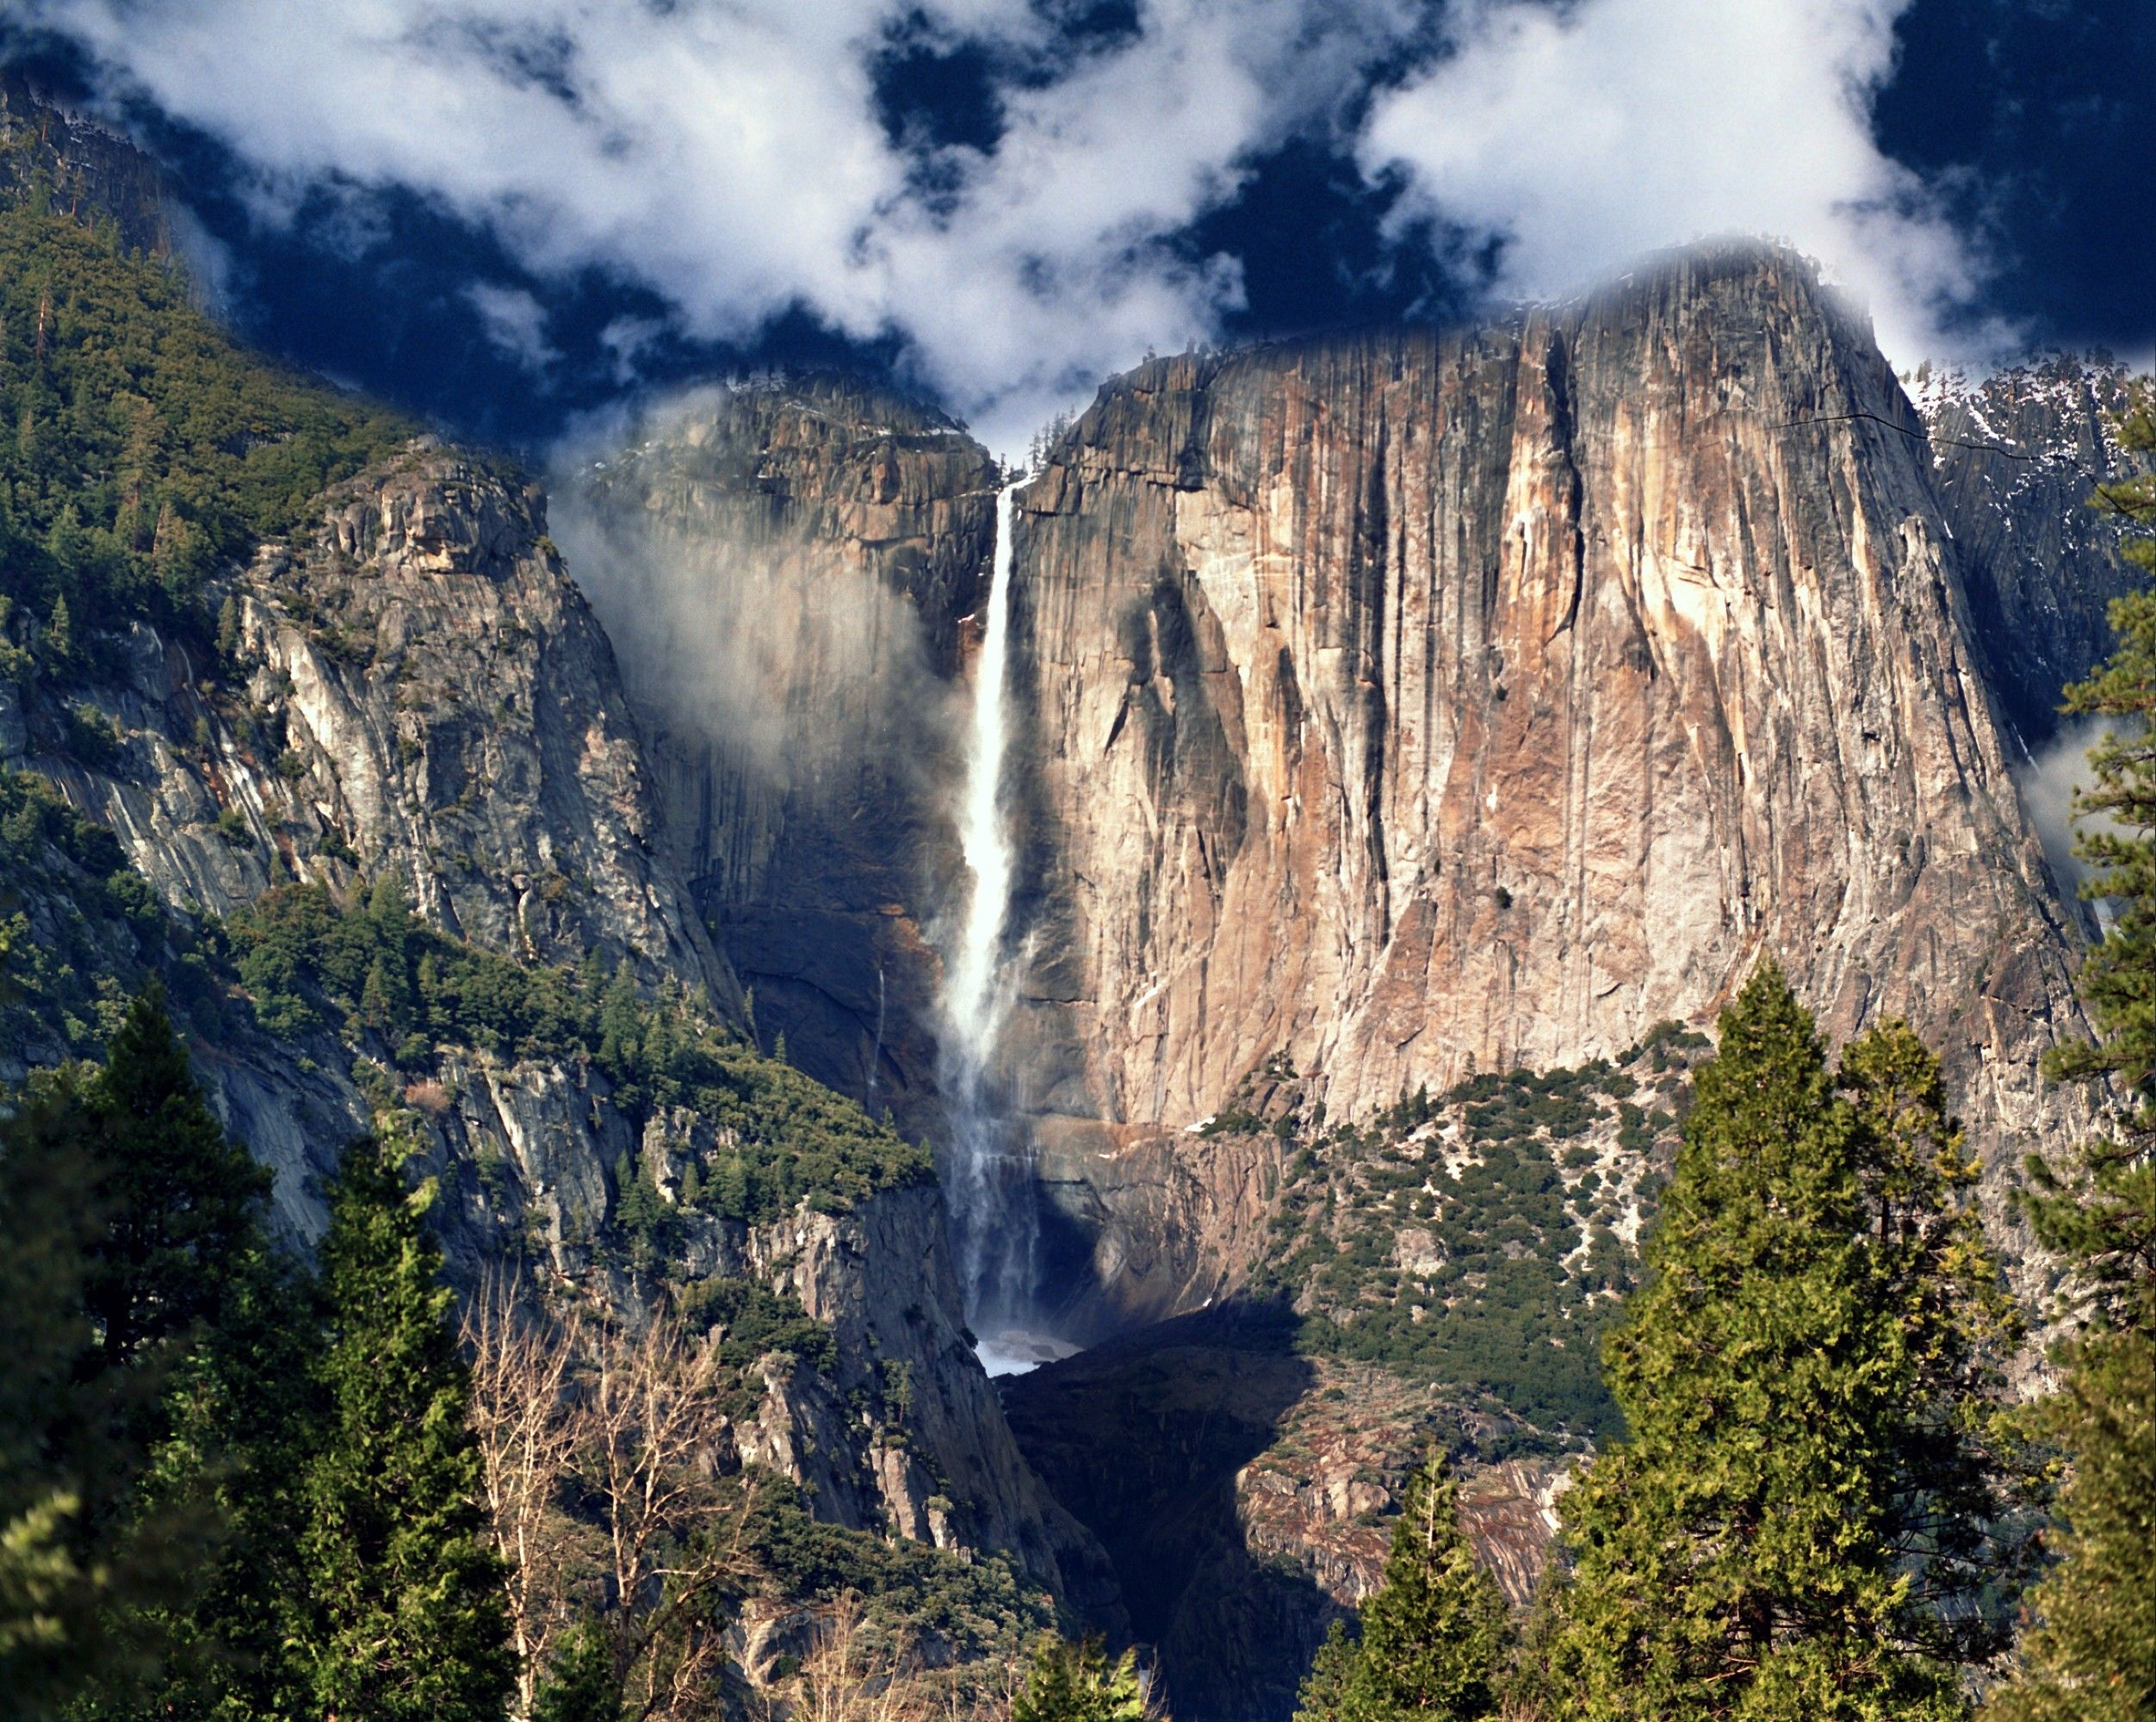 A waterfall over a cliff in Yosemite National Park.